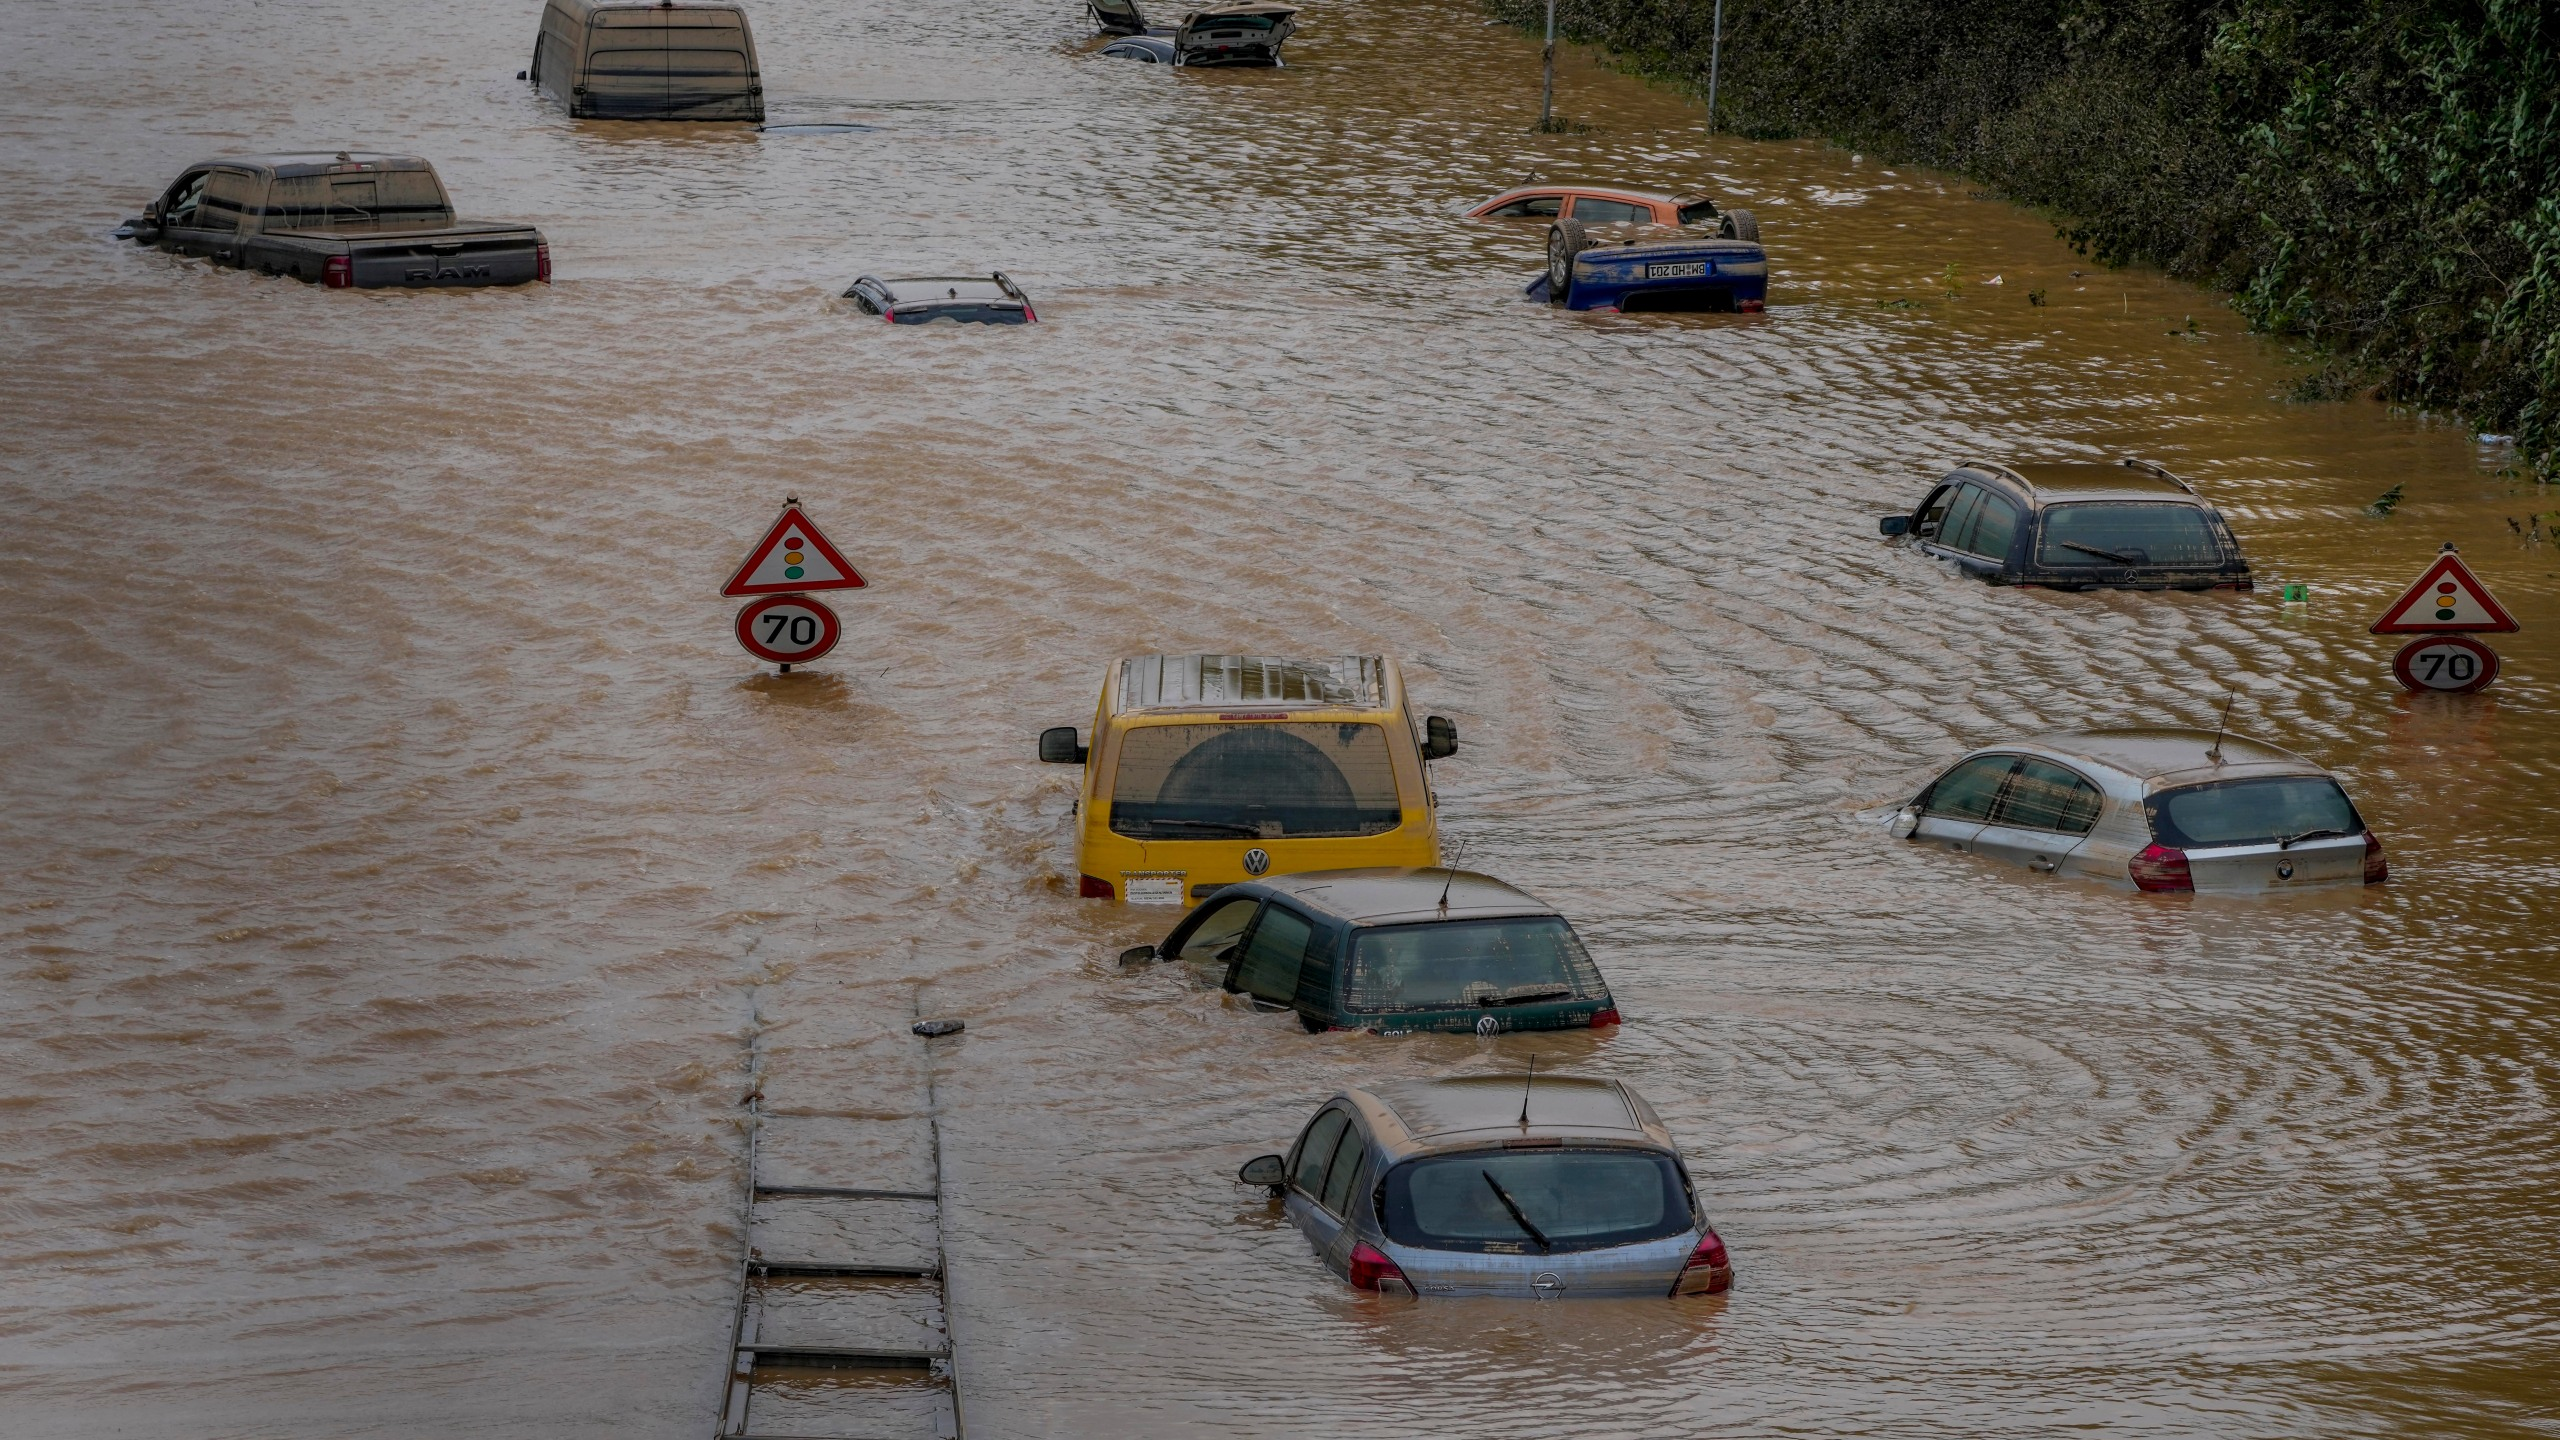 Cars show up as the flood sinks on a road in Erftstadt, Germany, Saturday, July 17, 2021. Due to strong rain falls the small Erft river went over the banks causing massive damages. (AP Photo/Michael Probst)